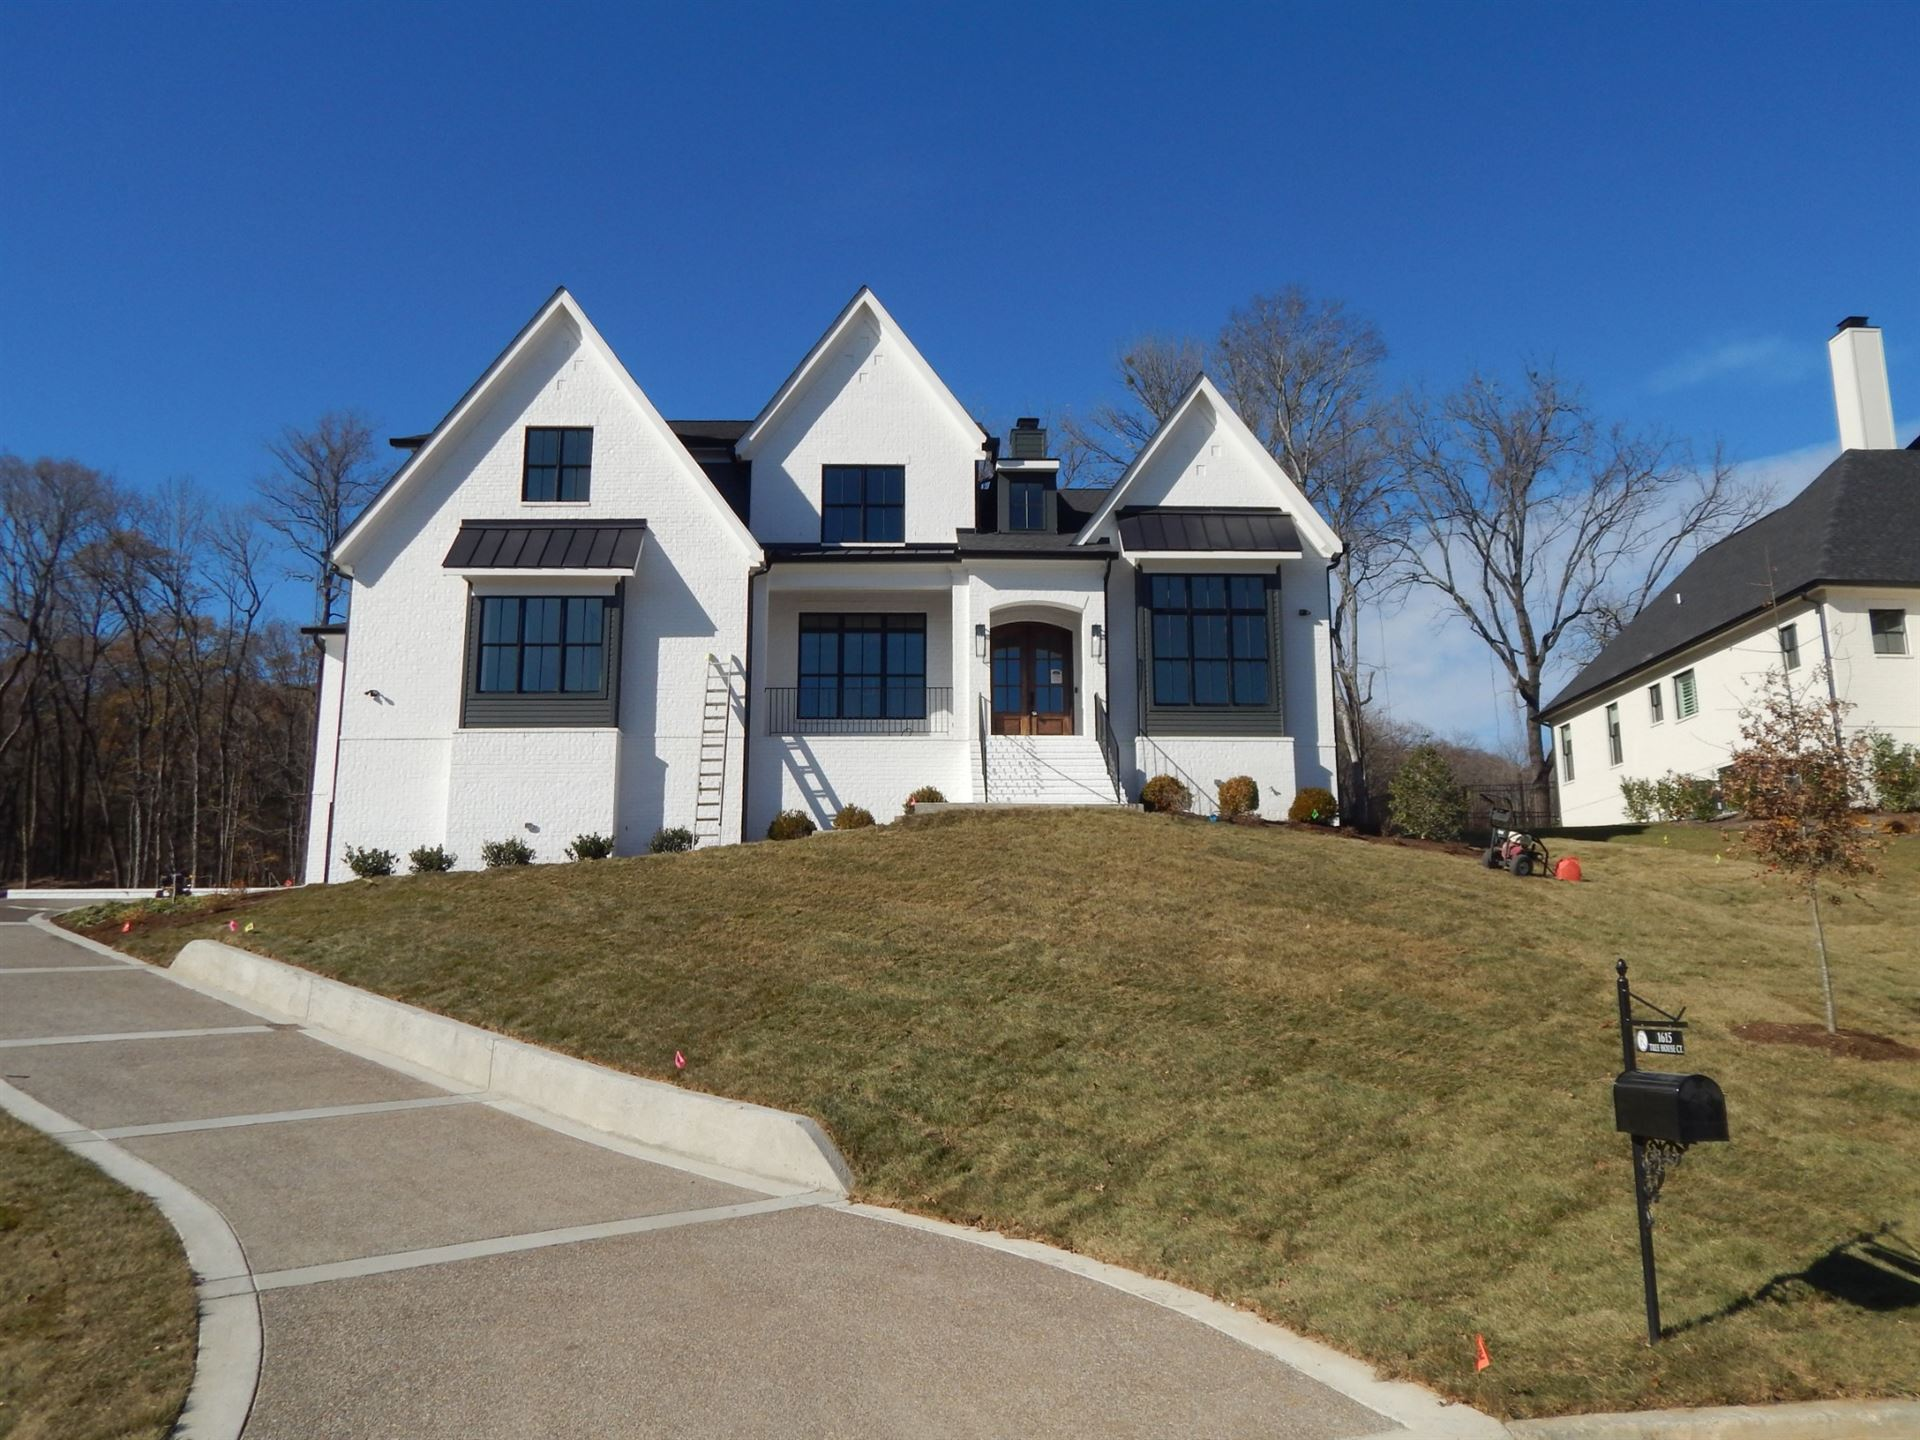 Photo of 1615 Treehouse Ct, Brentwood, TN 37027 (MLS # 2259480)